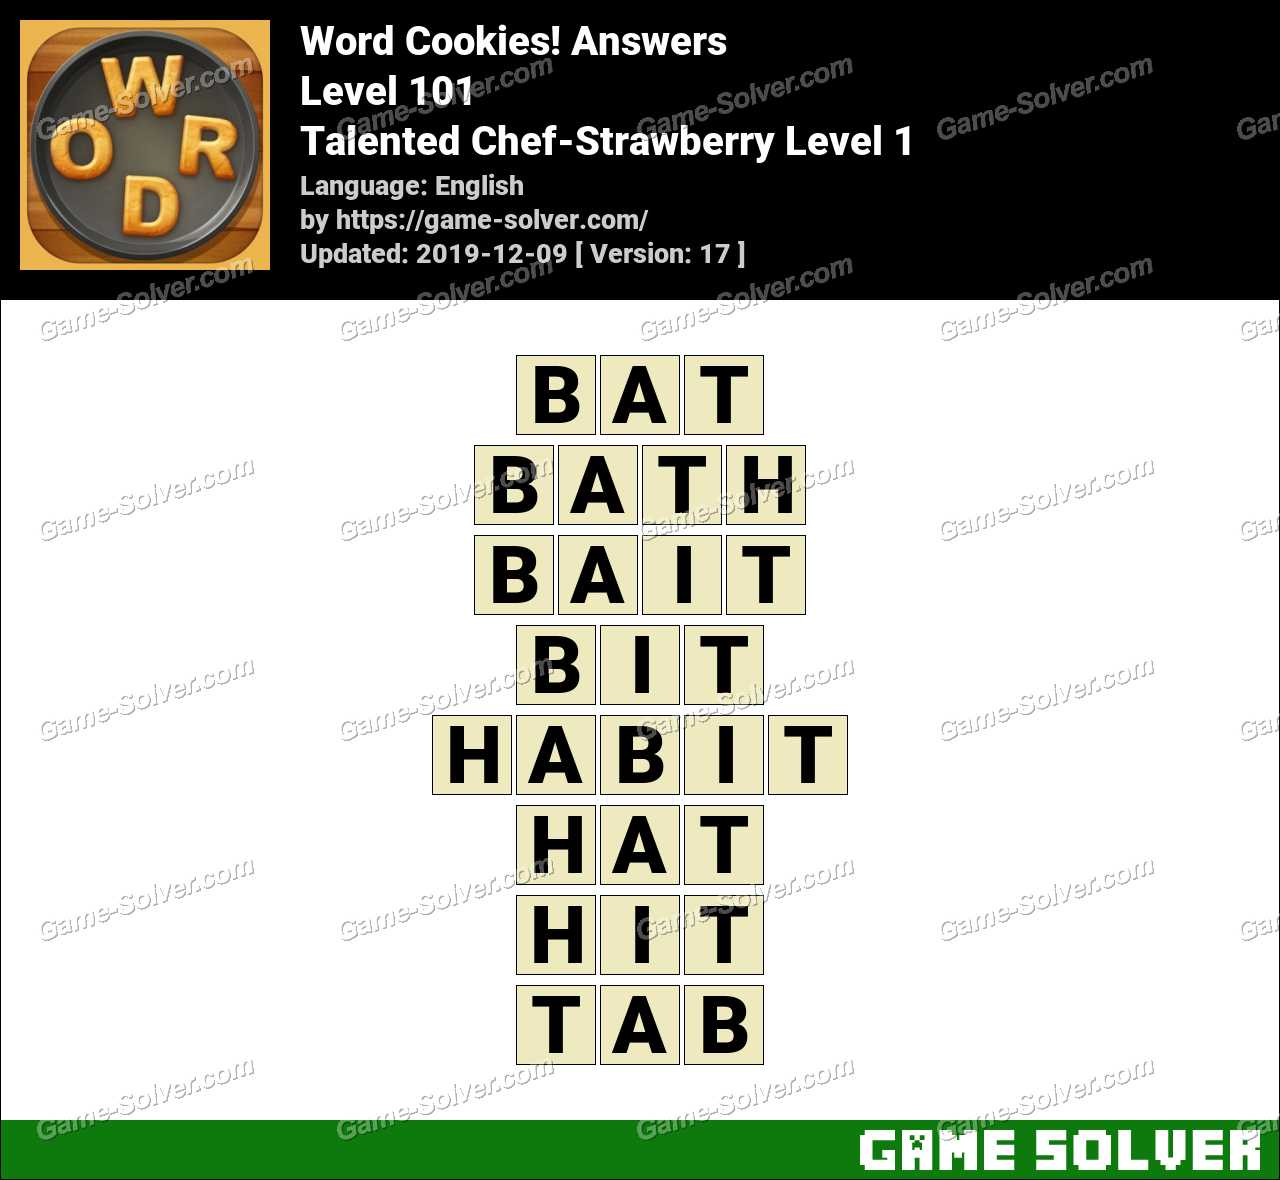 Word Cookies Talented Chef-Strawberry Level 1 Answers